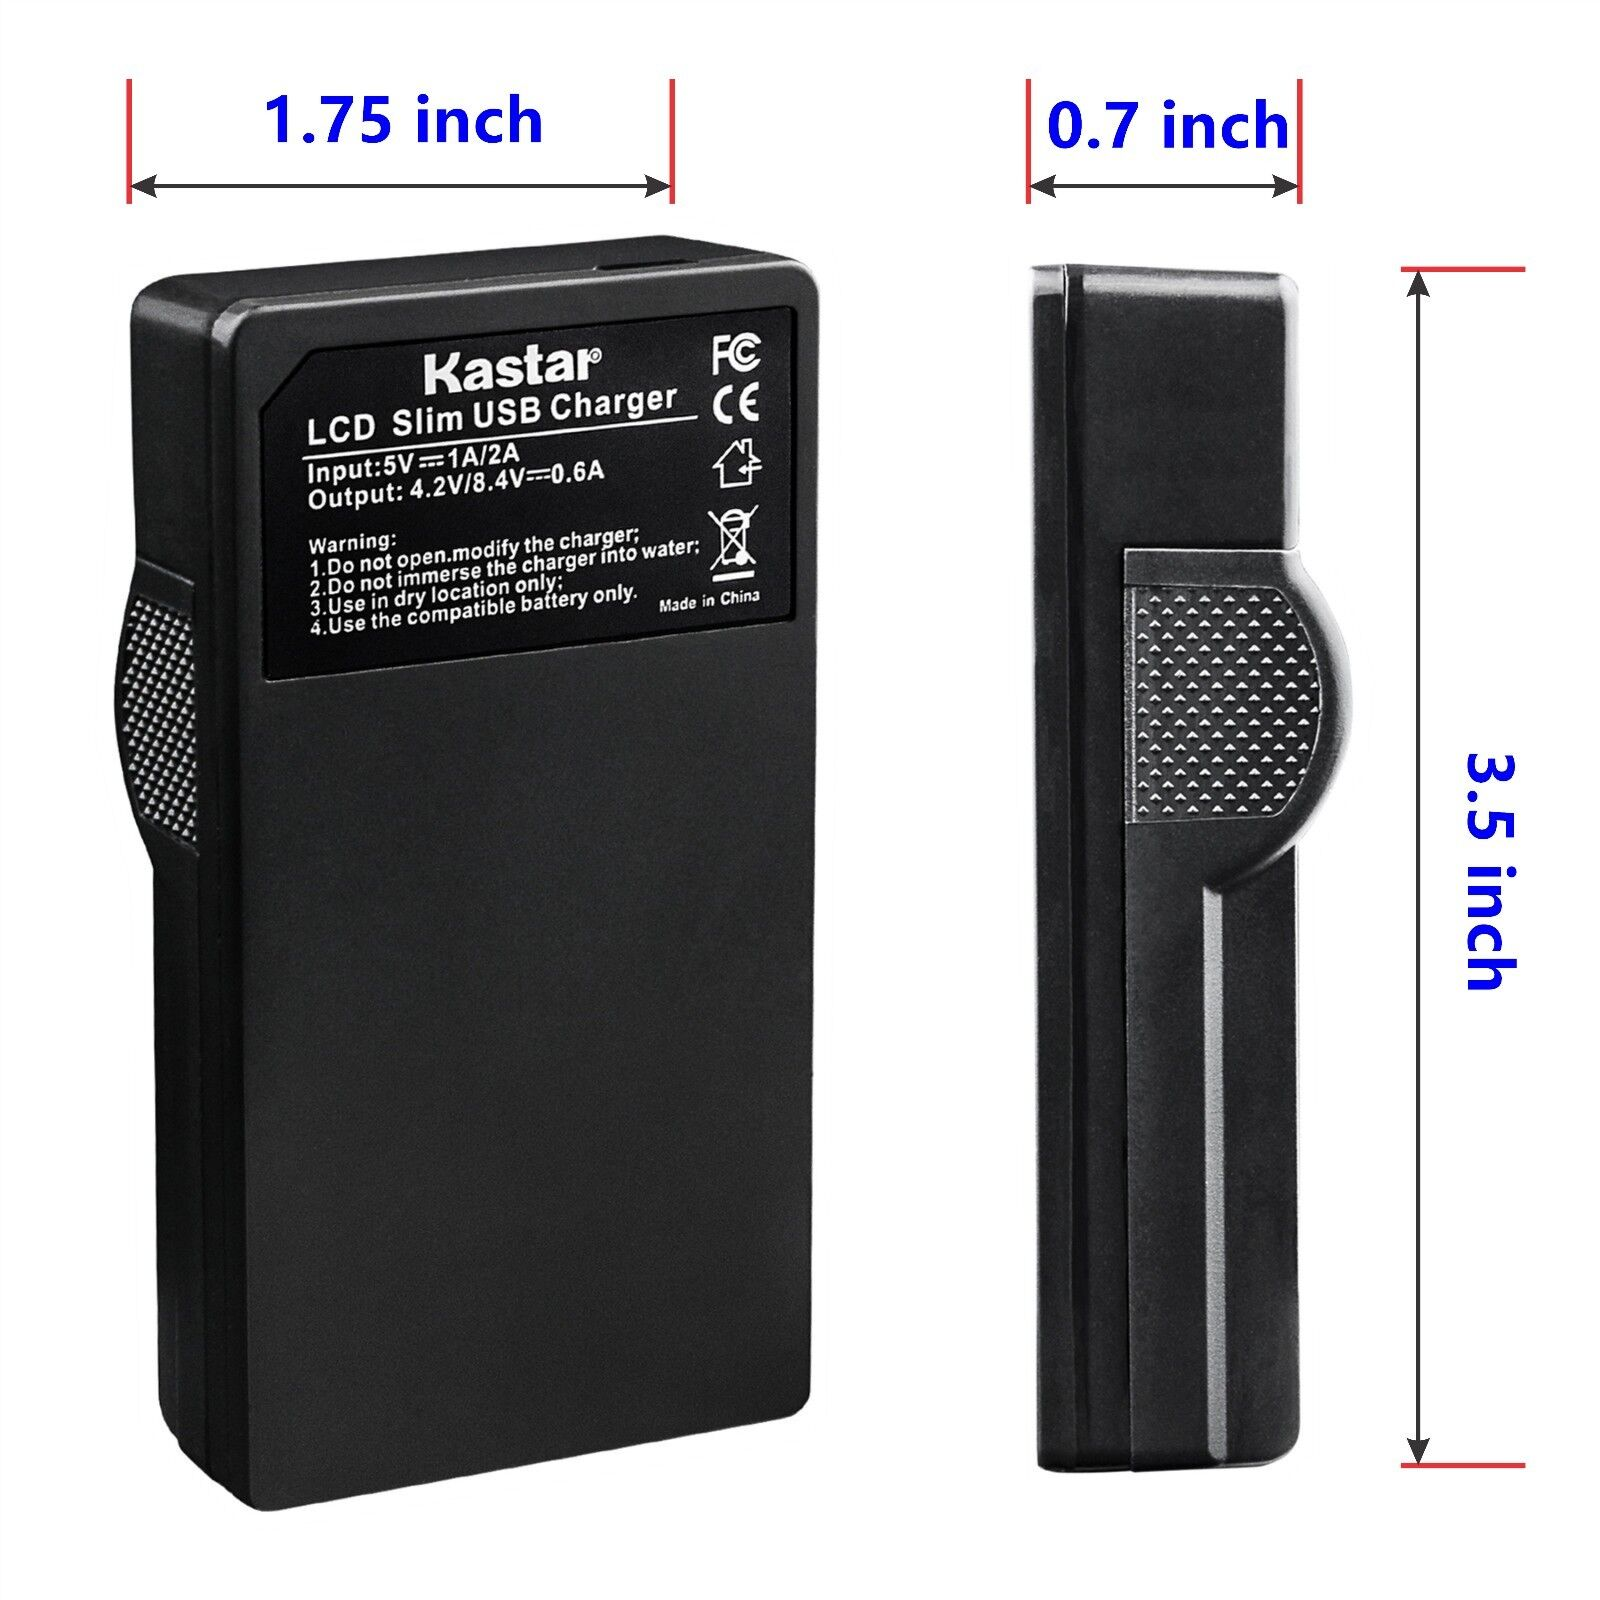 Kastar F980 Battery LCD Charger For Sony NP-F960 NP-F750 DCR-TRV130 DCR-TRV203 - $7.99